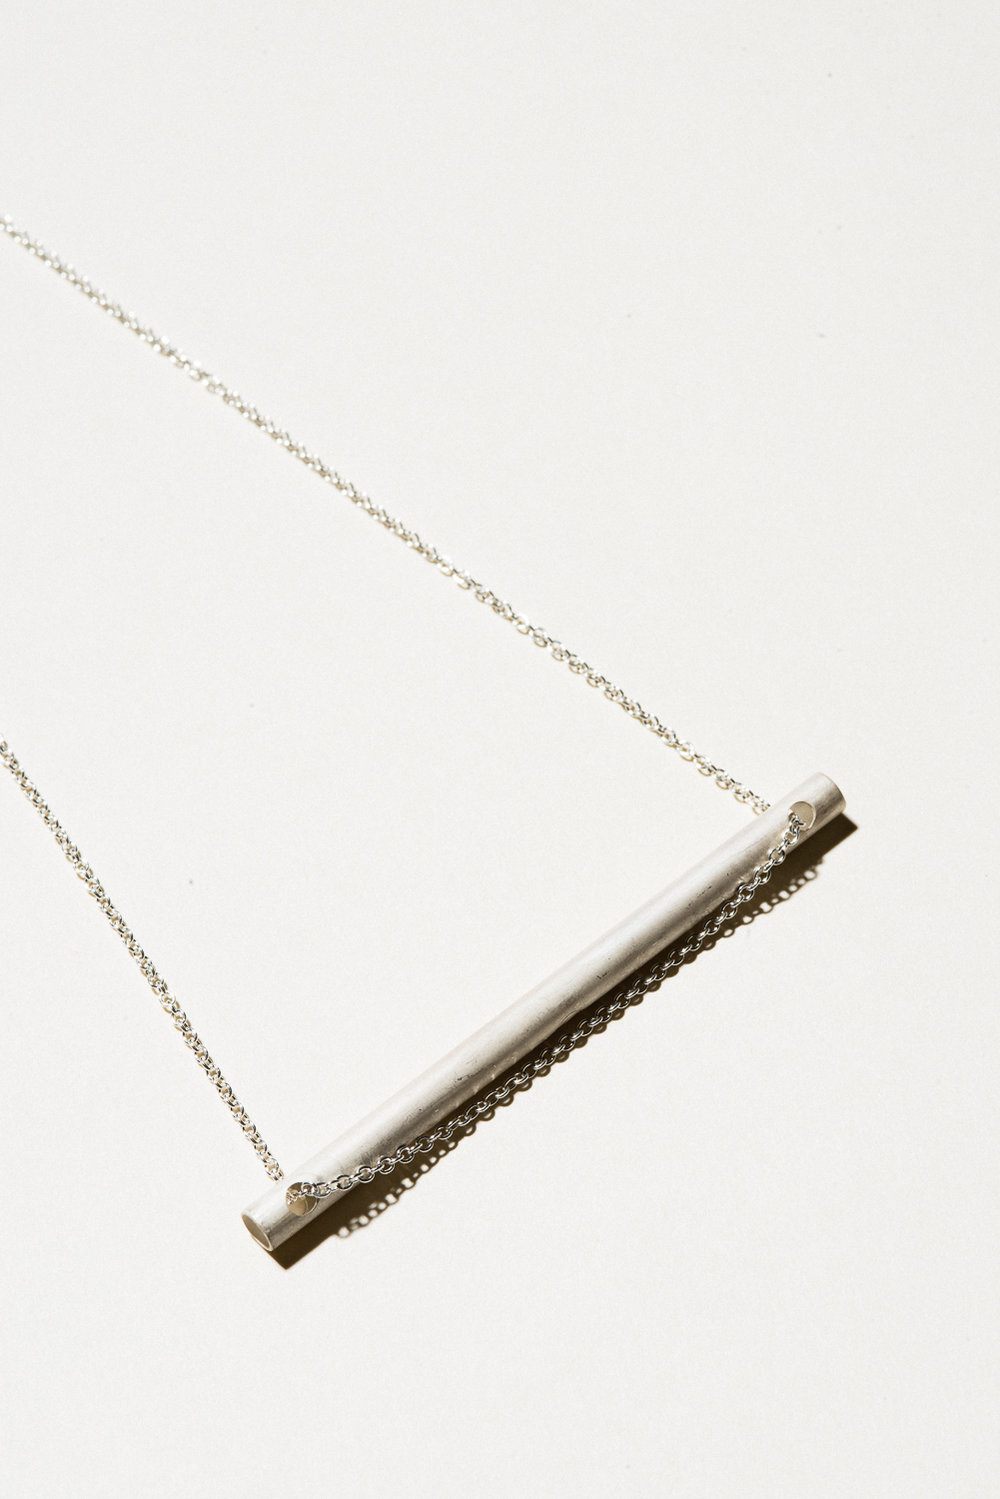 "Silver Straw Necklace - 3"" on a 22"" chainSterling Silver, Raw FinishHand Smithed$100"